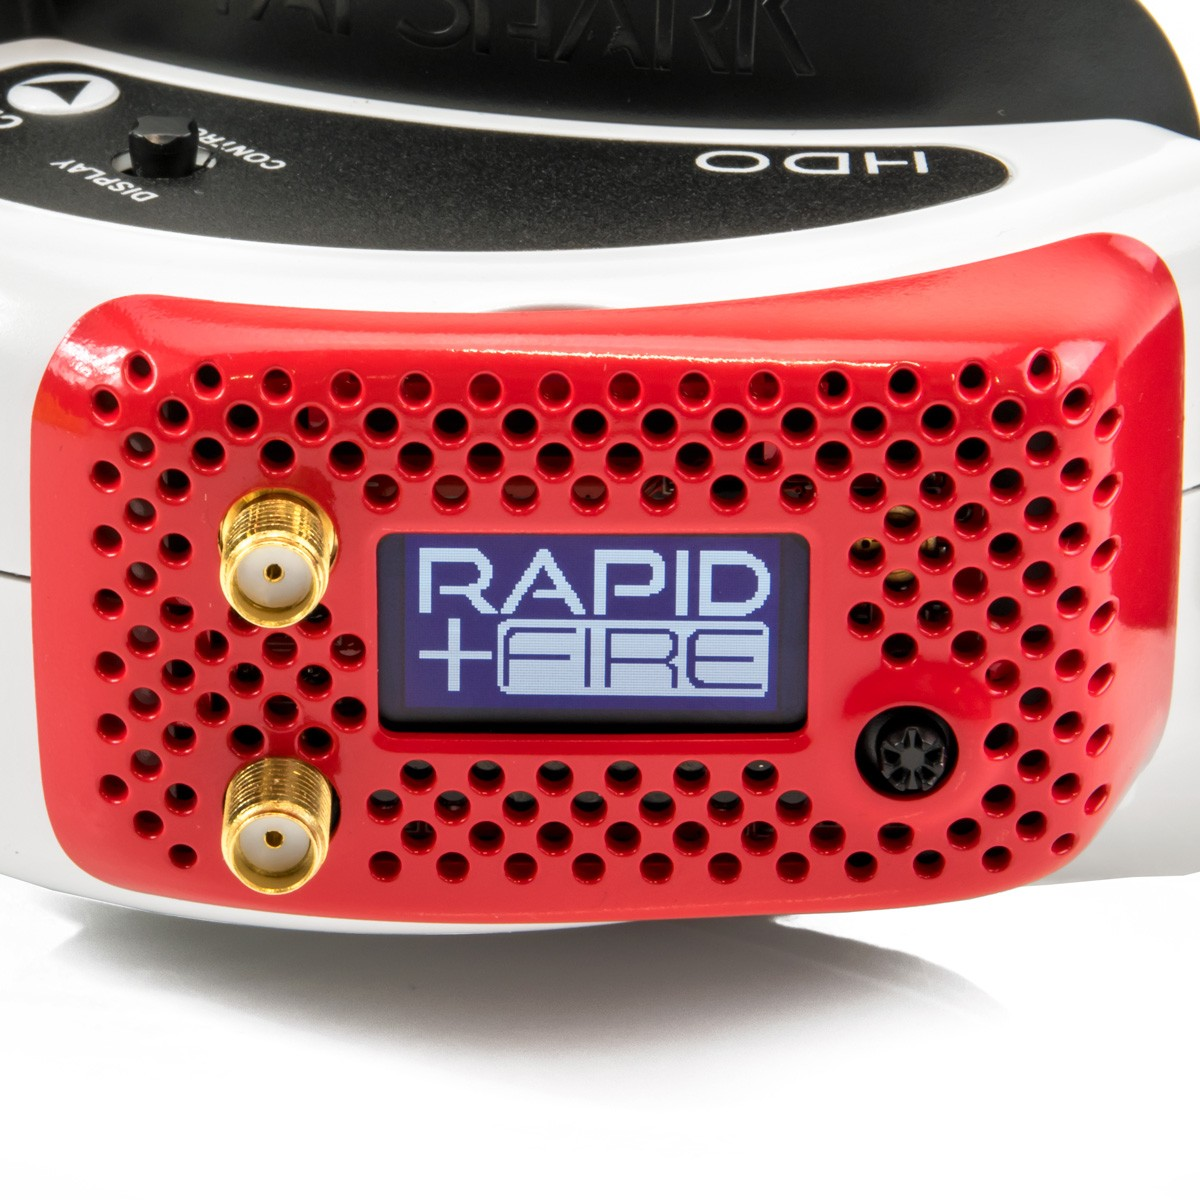 ImmersionRC RapidFIRE W/ Analog PLUS Goggle FPV Receiver For RC Drone Multi Rotors FPV Racing Parts